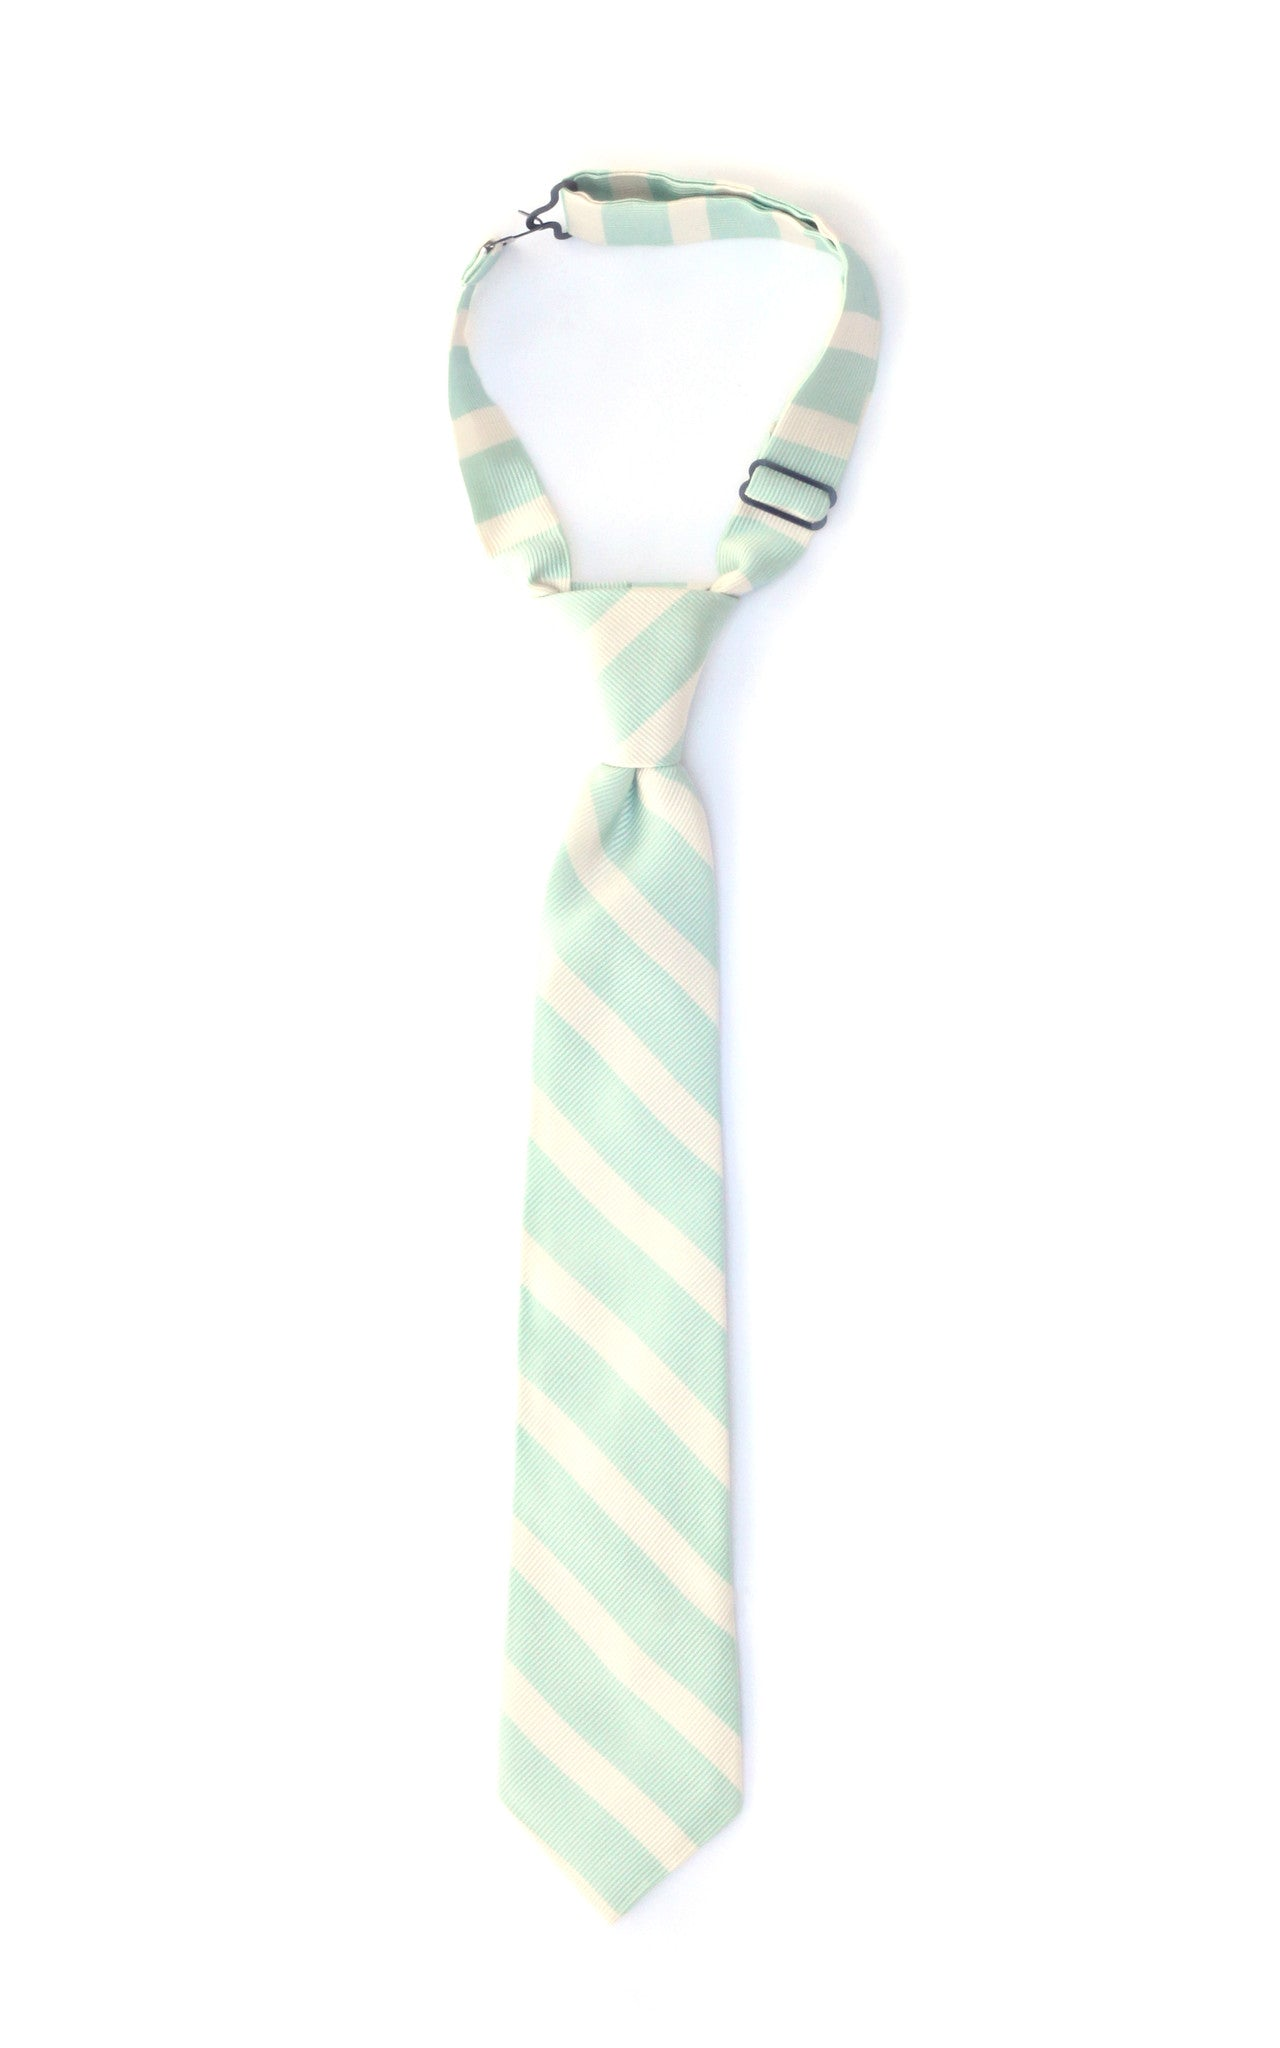 Bridgeport Necktie